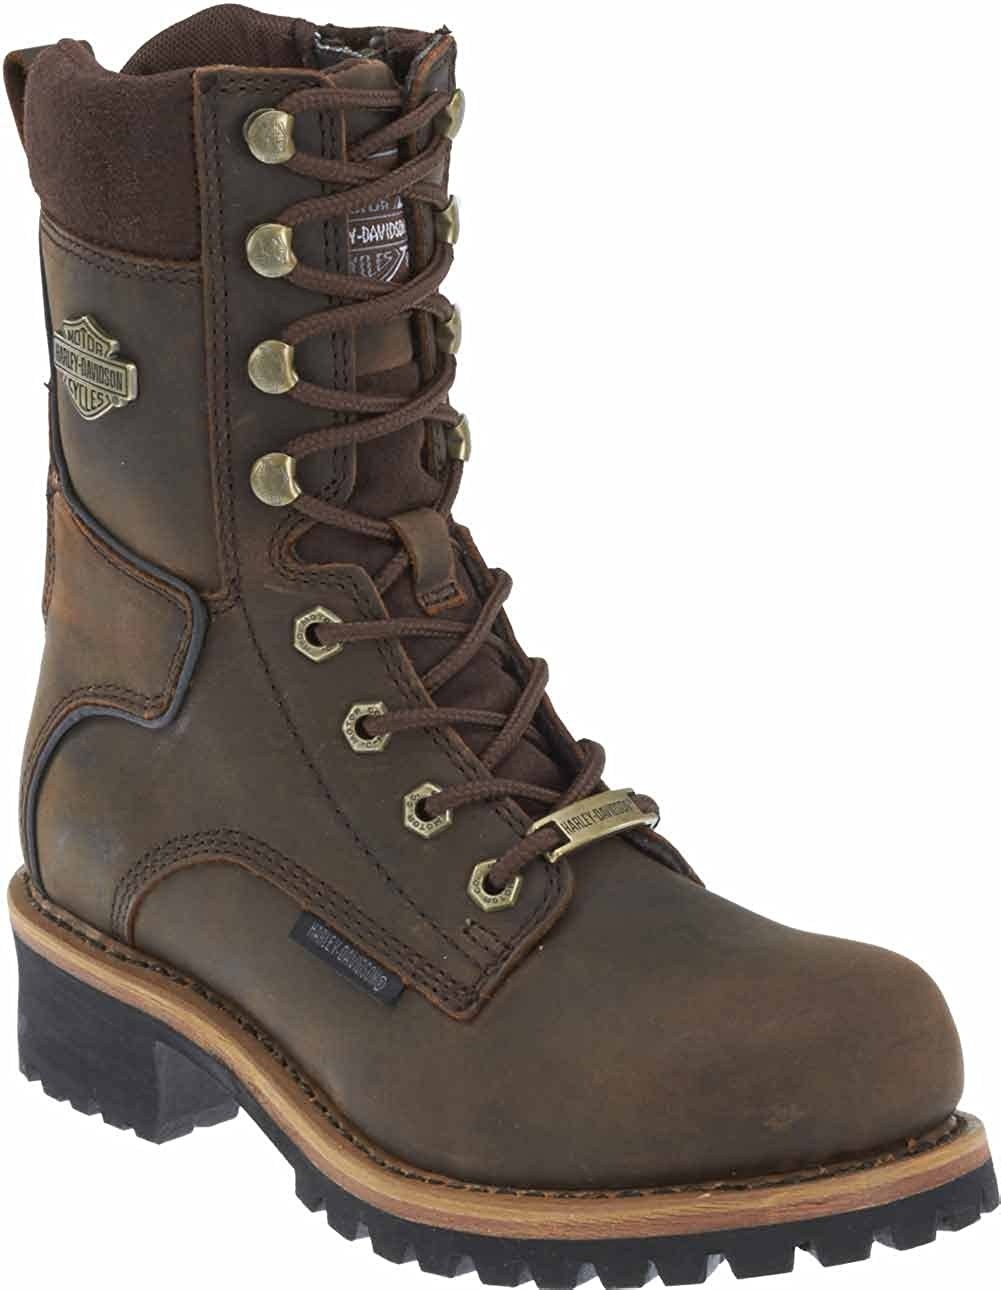 Harley-Davidson Womens Tyson 7-In Logger Motorcycle Boots D87088 Brown, 11